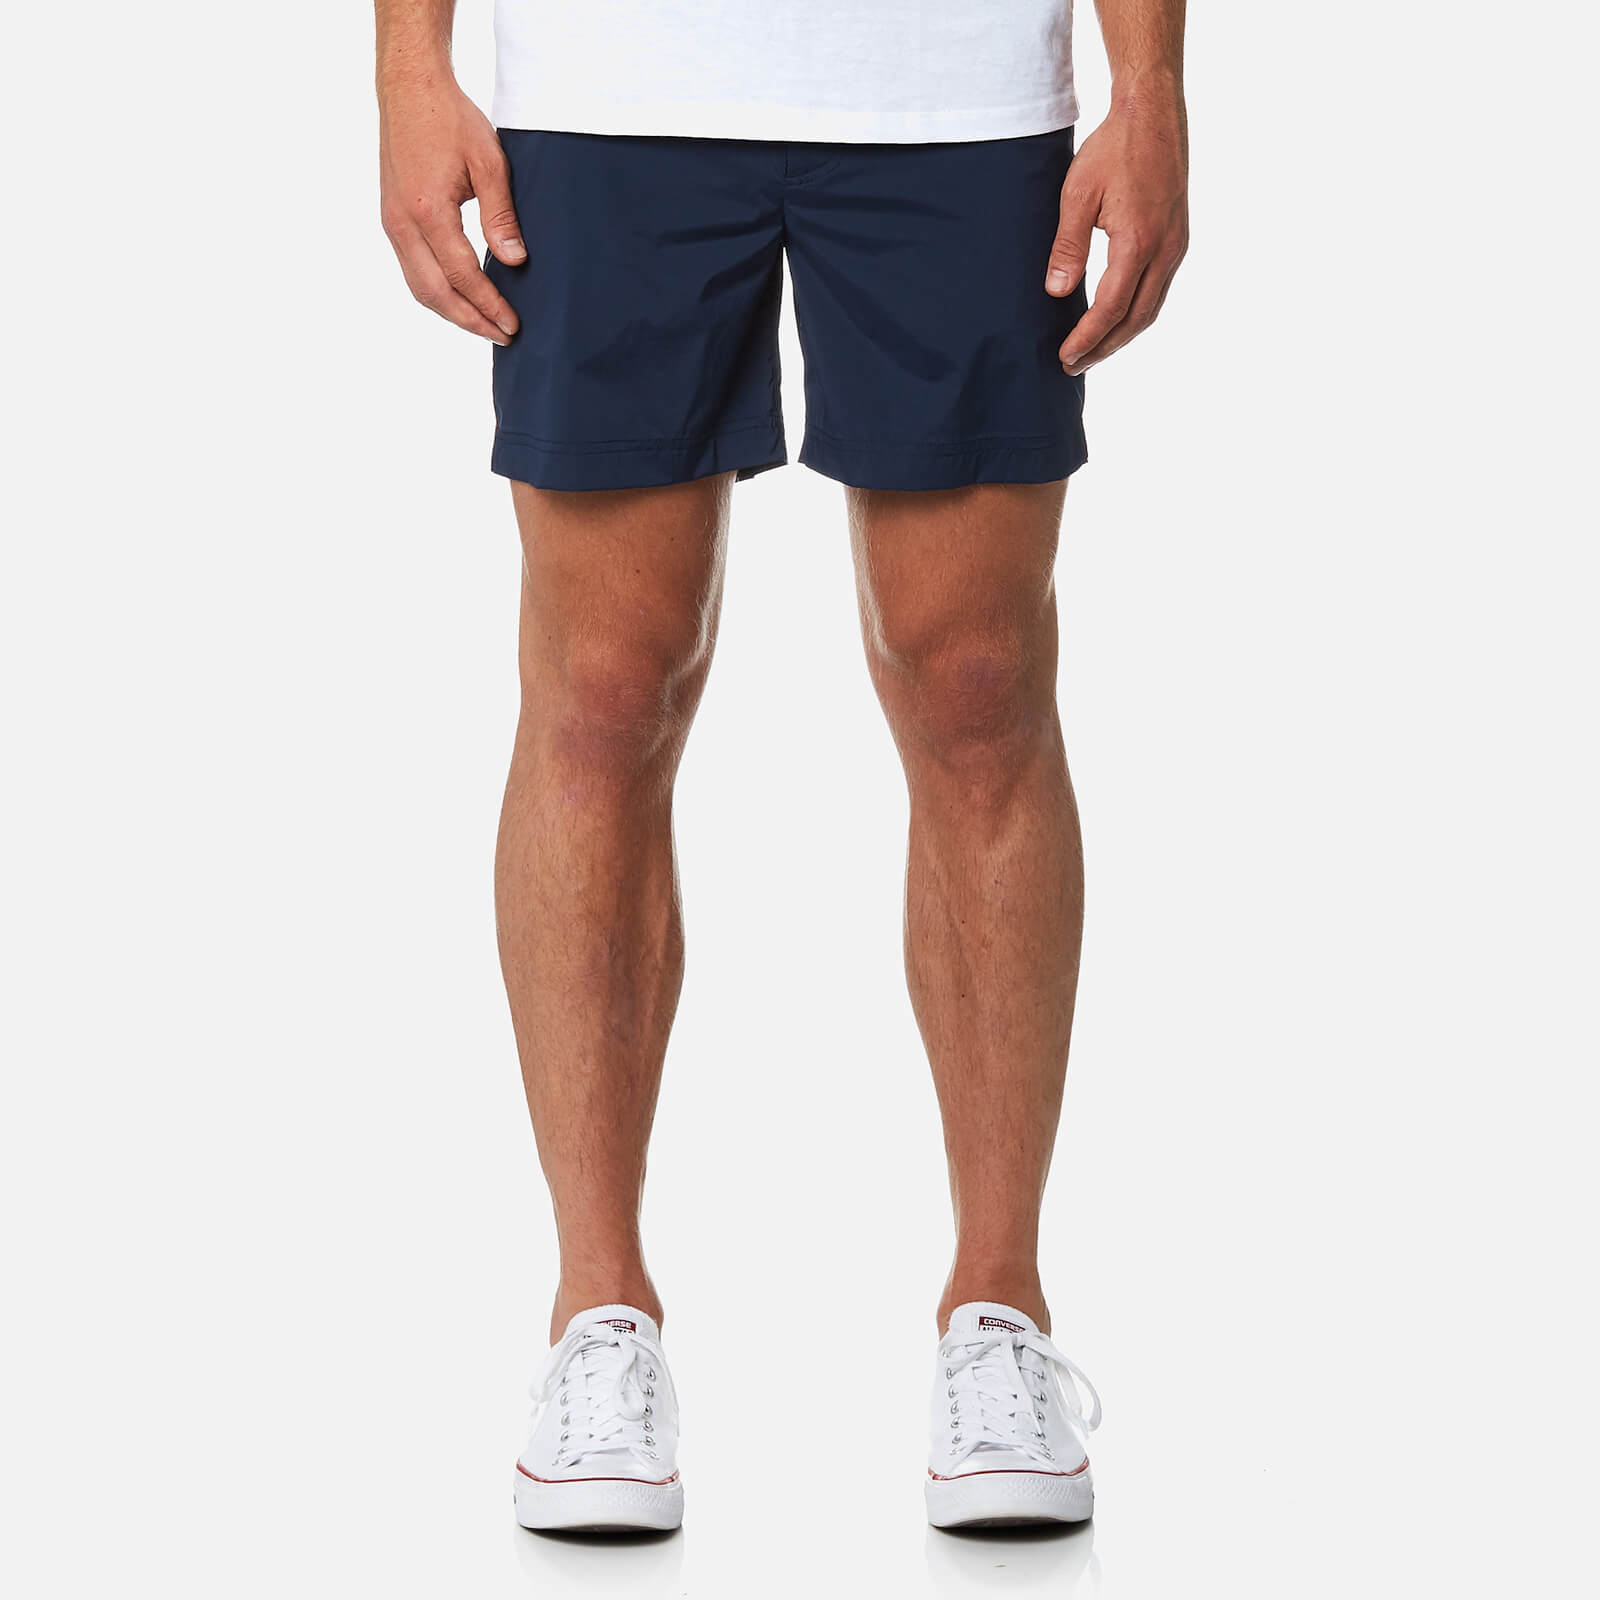 6f3c80587a Orlebar Brown Men's Bulldog Sport Swim Shorts - Navy - Free UK Delivery over  £50